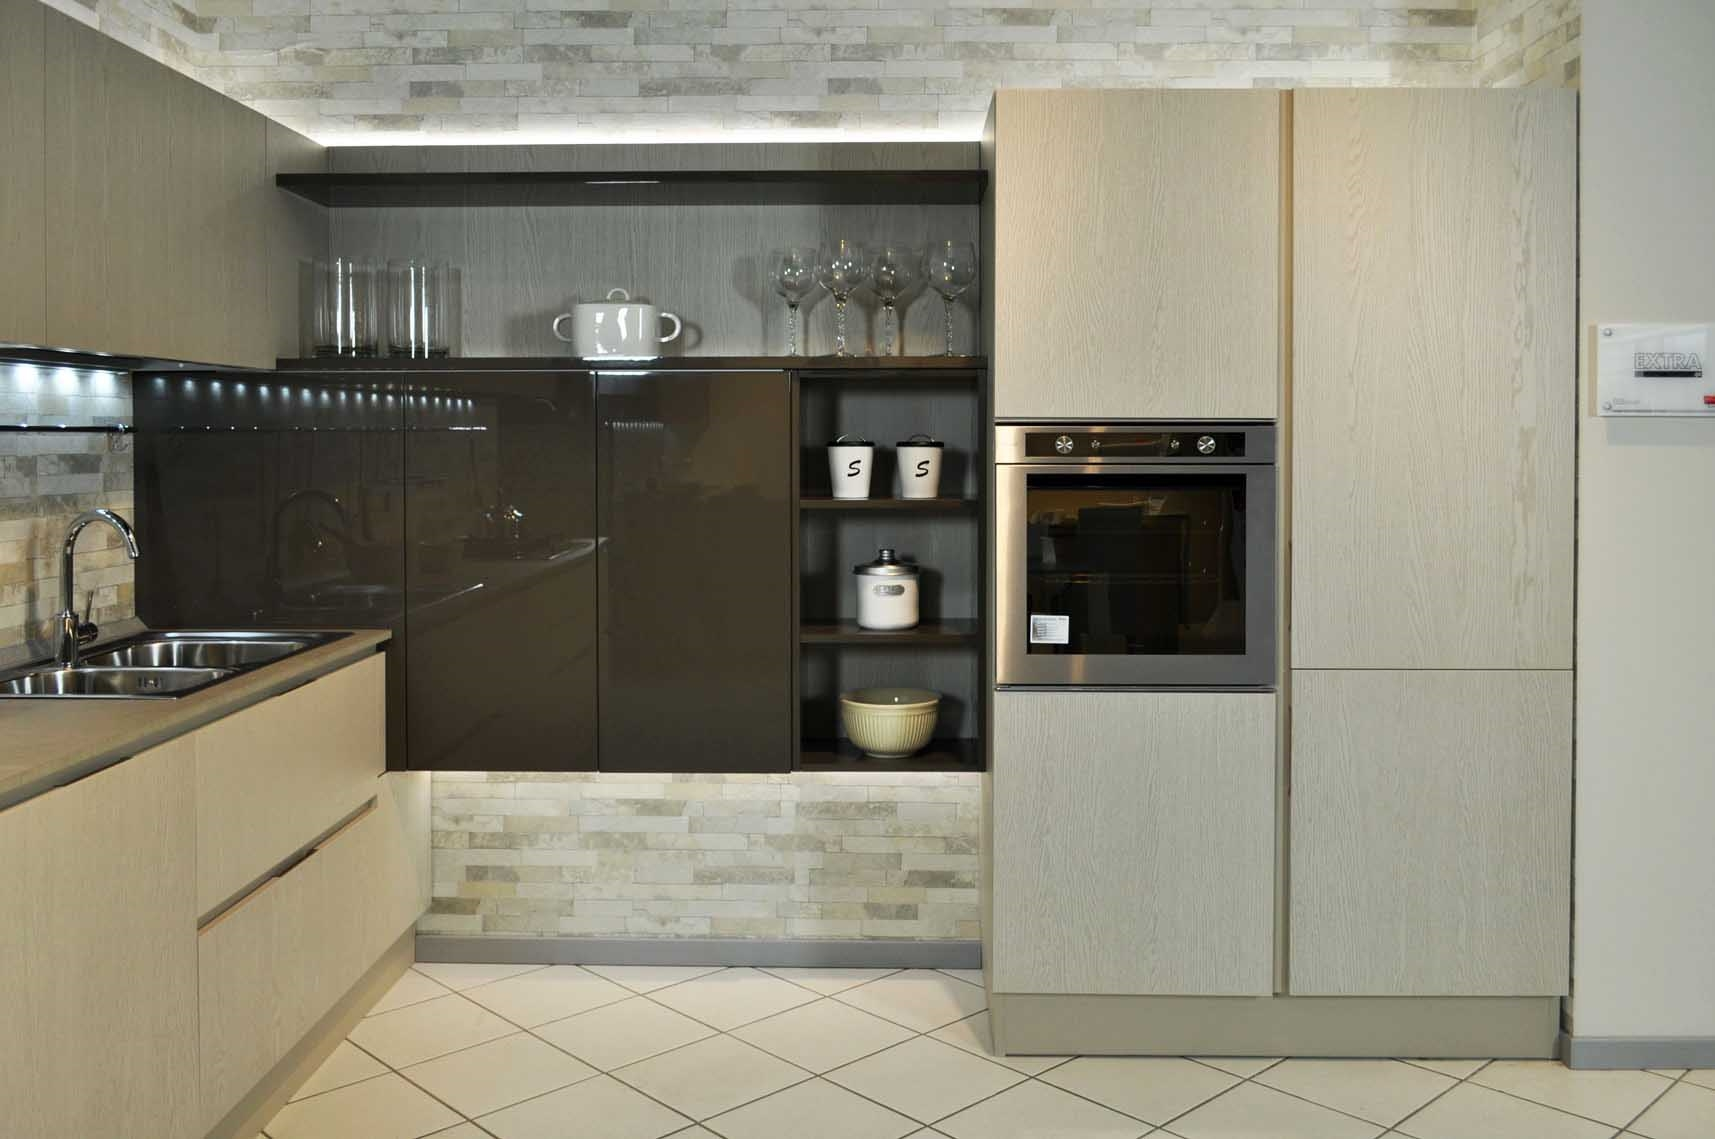 Best Veneta Cucine Extra Go Photos - Ideas & Design 2017 ...